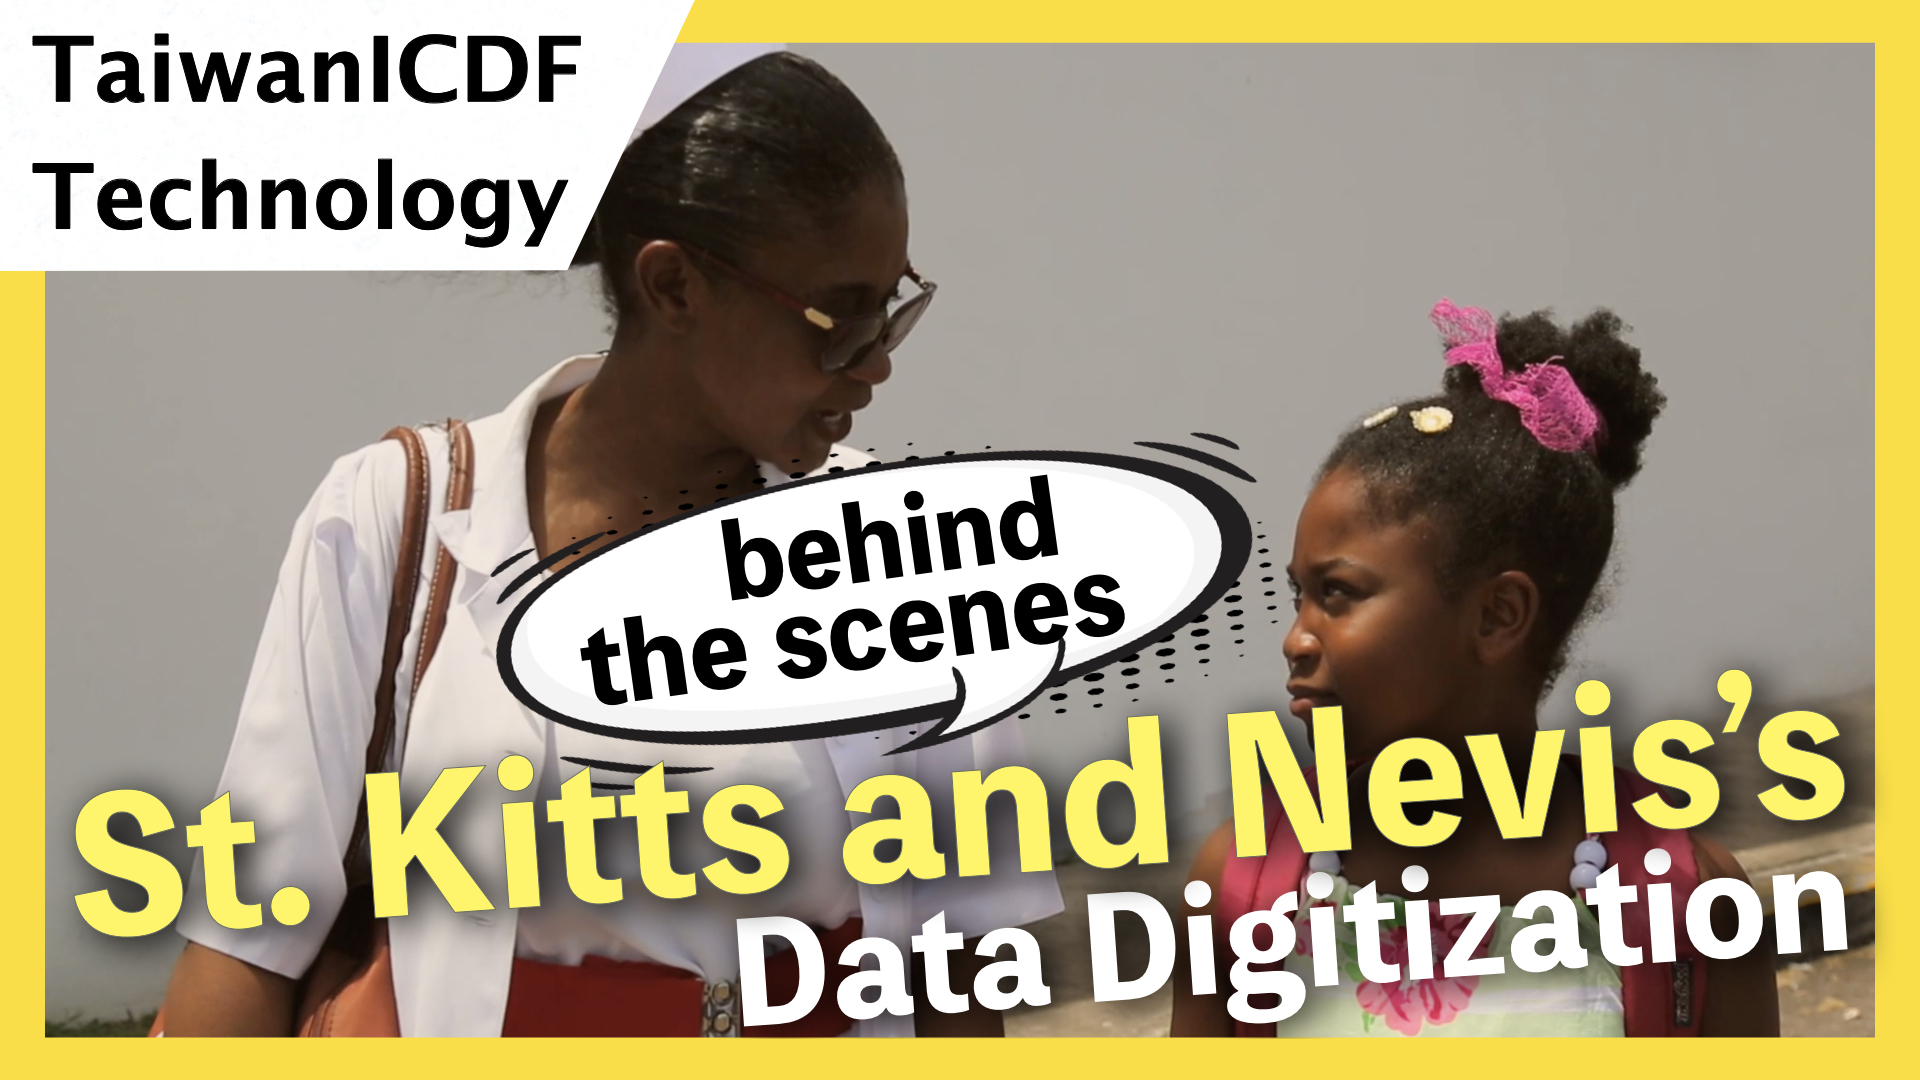 ICT Project in St. Kitts and Nevis- Behind the scenes